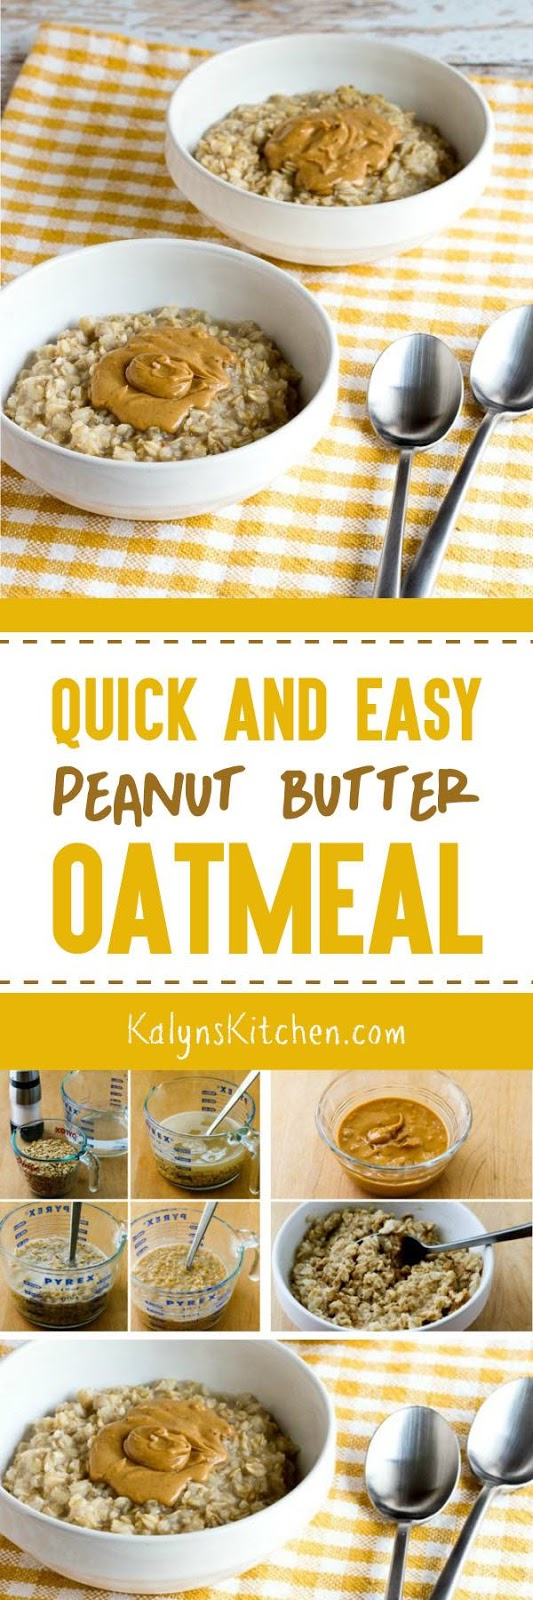 Quick and EASY Peanut Butter Oatmeal - Kalyn's Kitchen